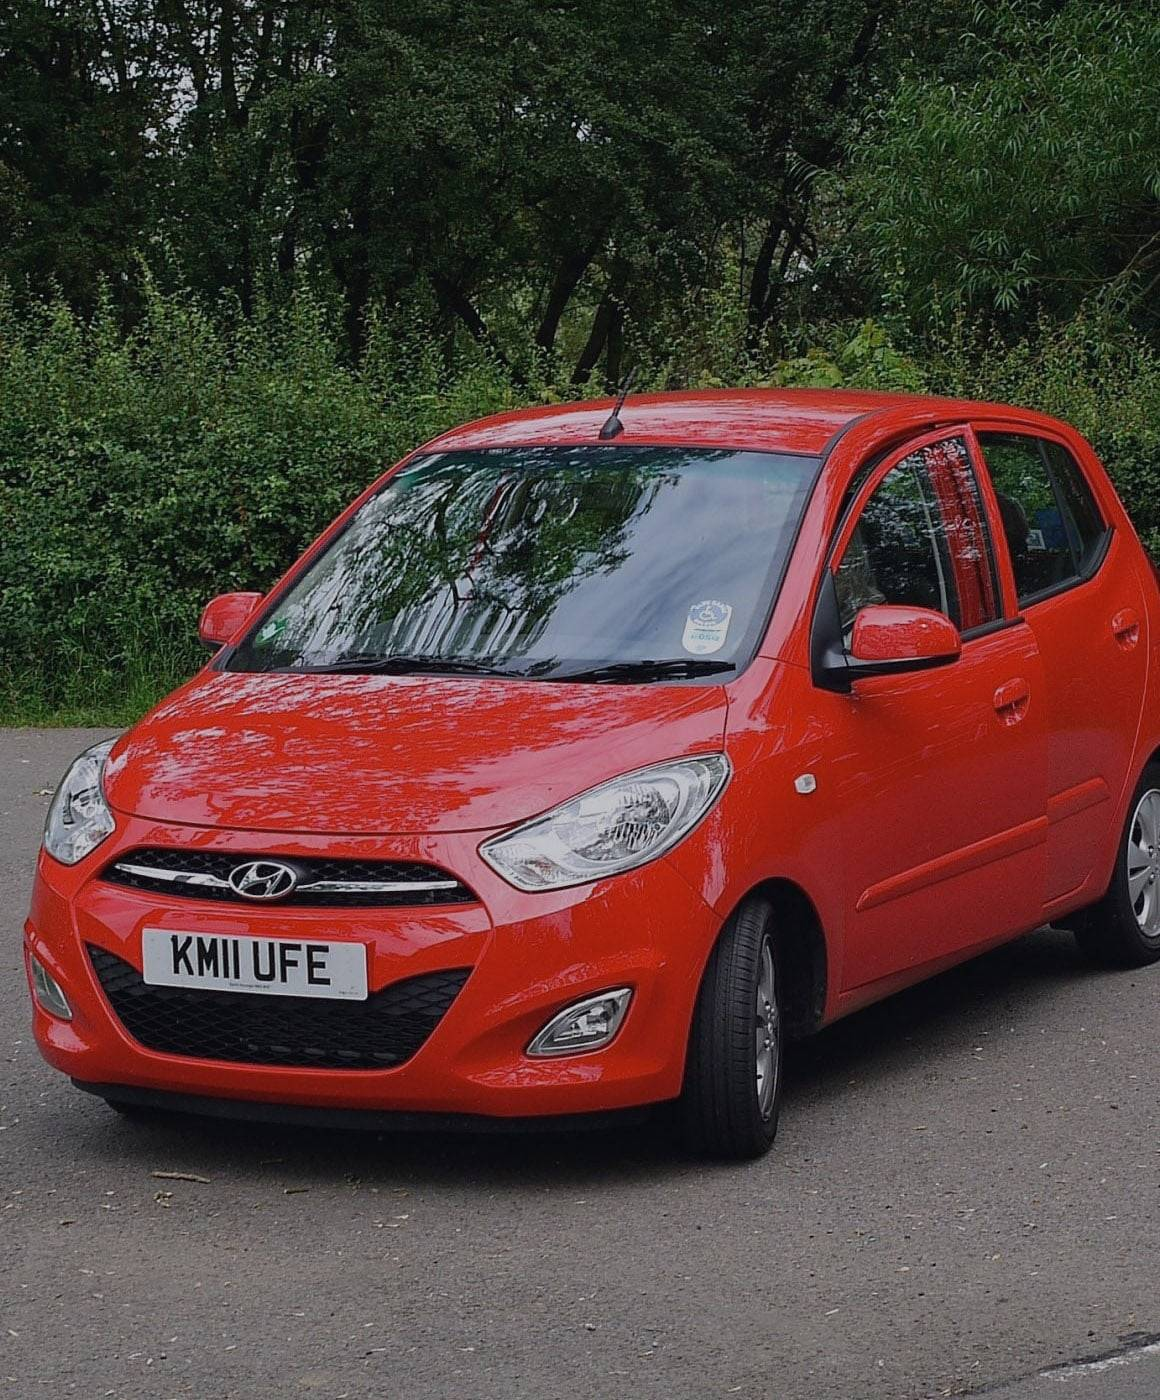 Compare cheap Hyundai insurance cover for all models